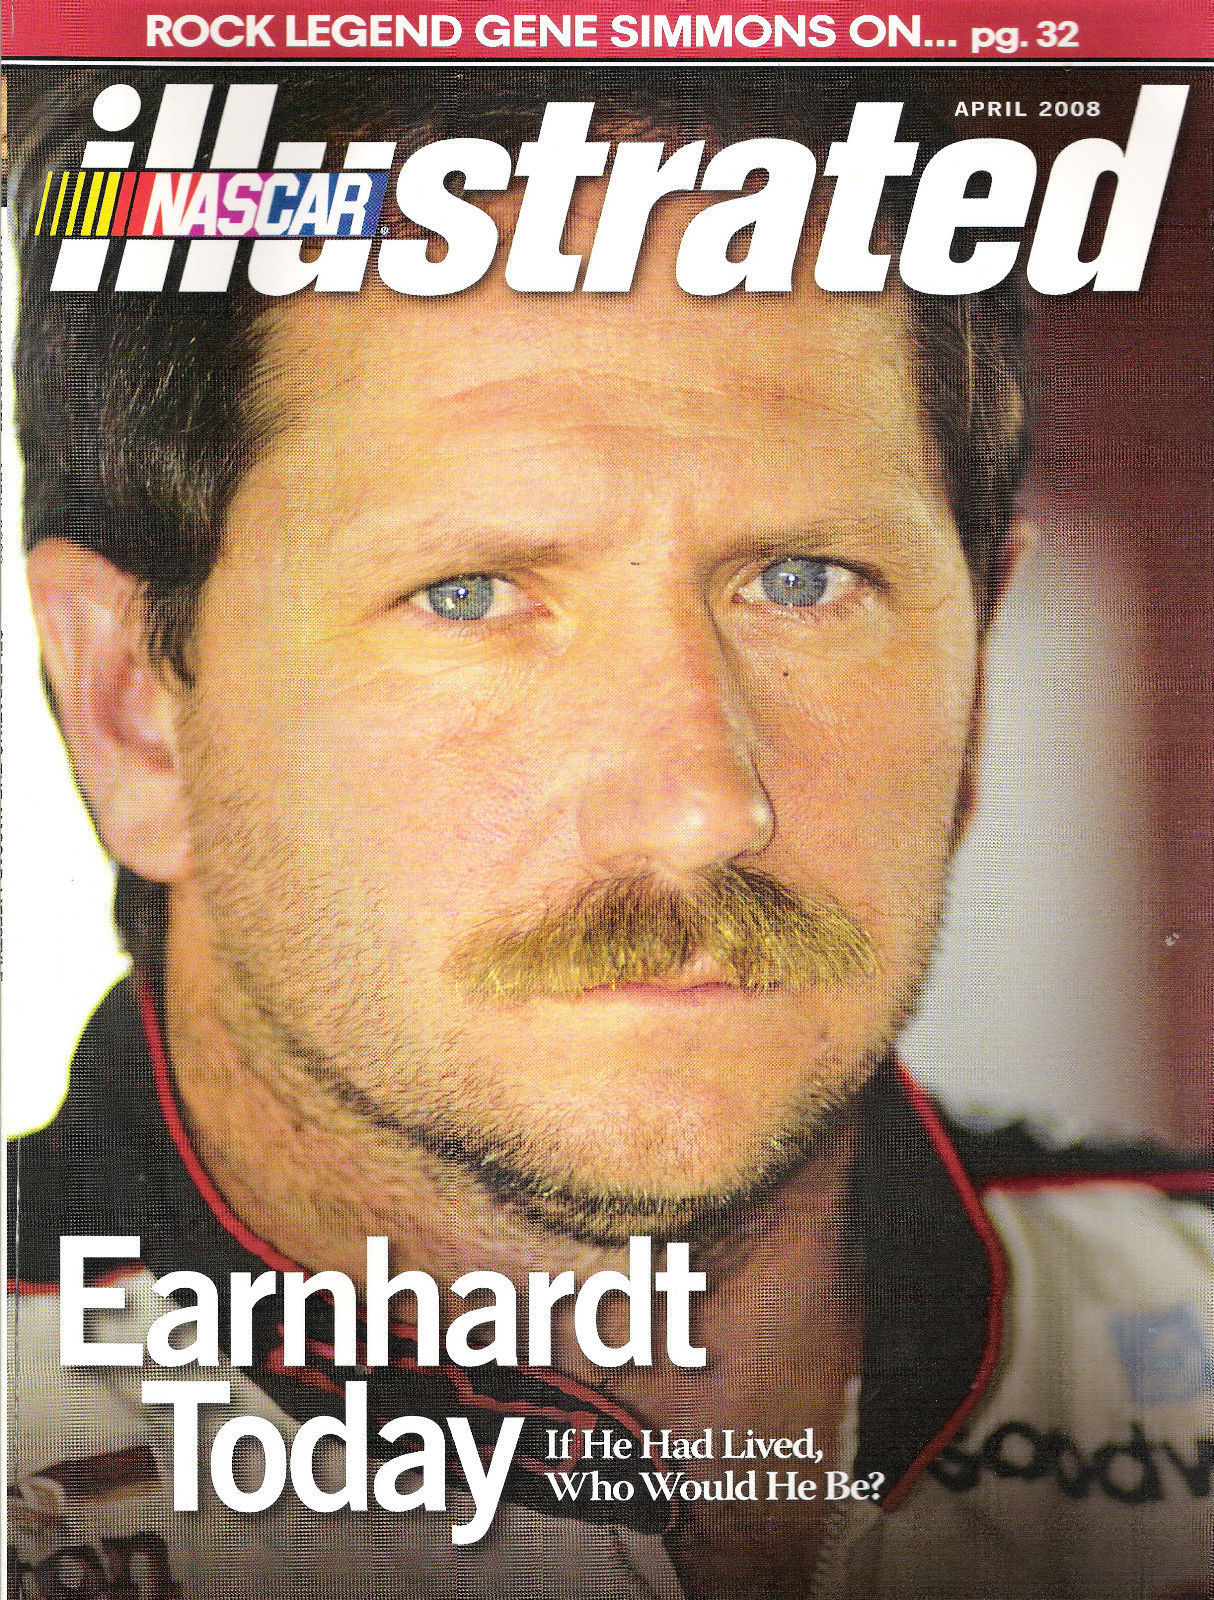 Earnhardt Today - If He Had Lived, Who Would He Be Today ?